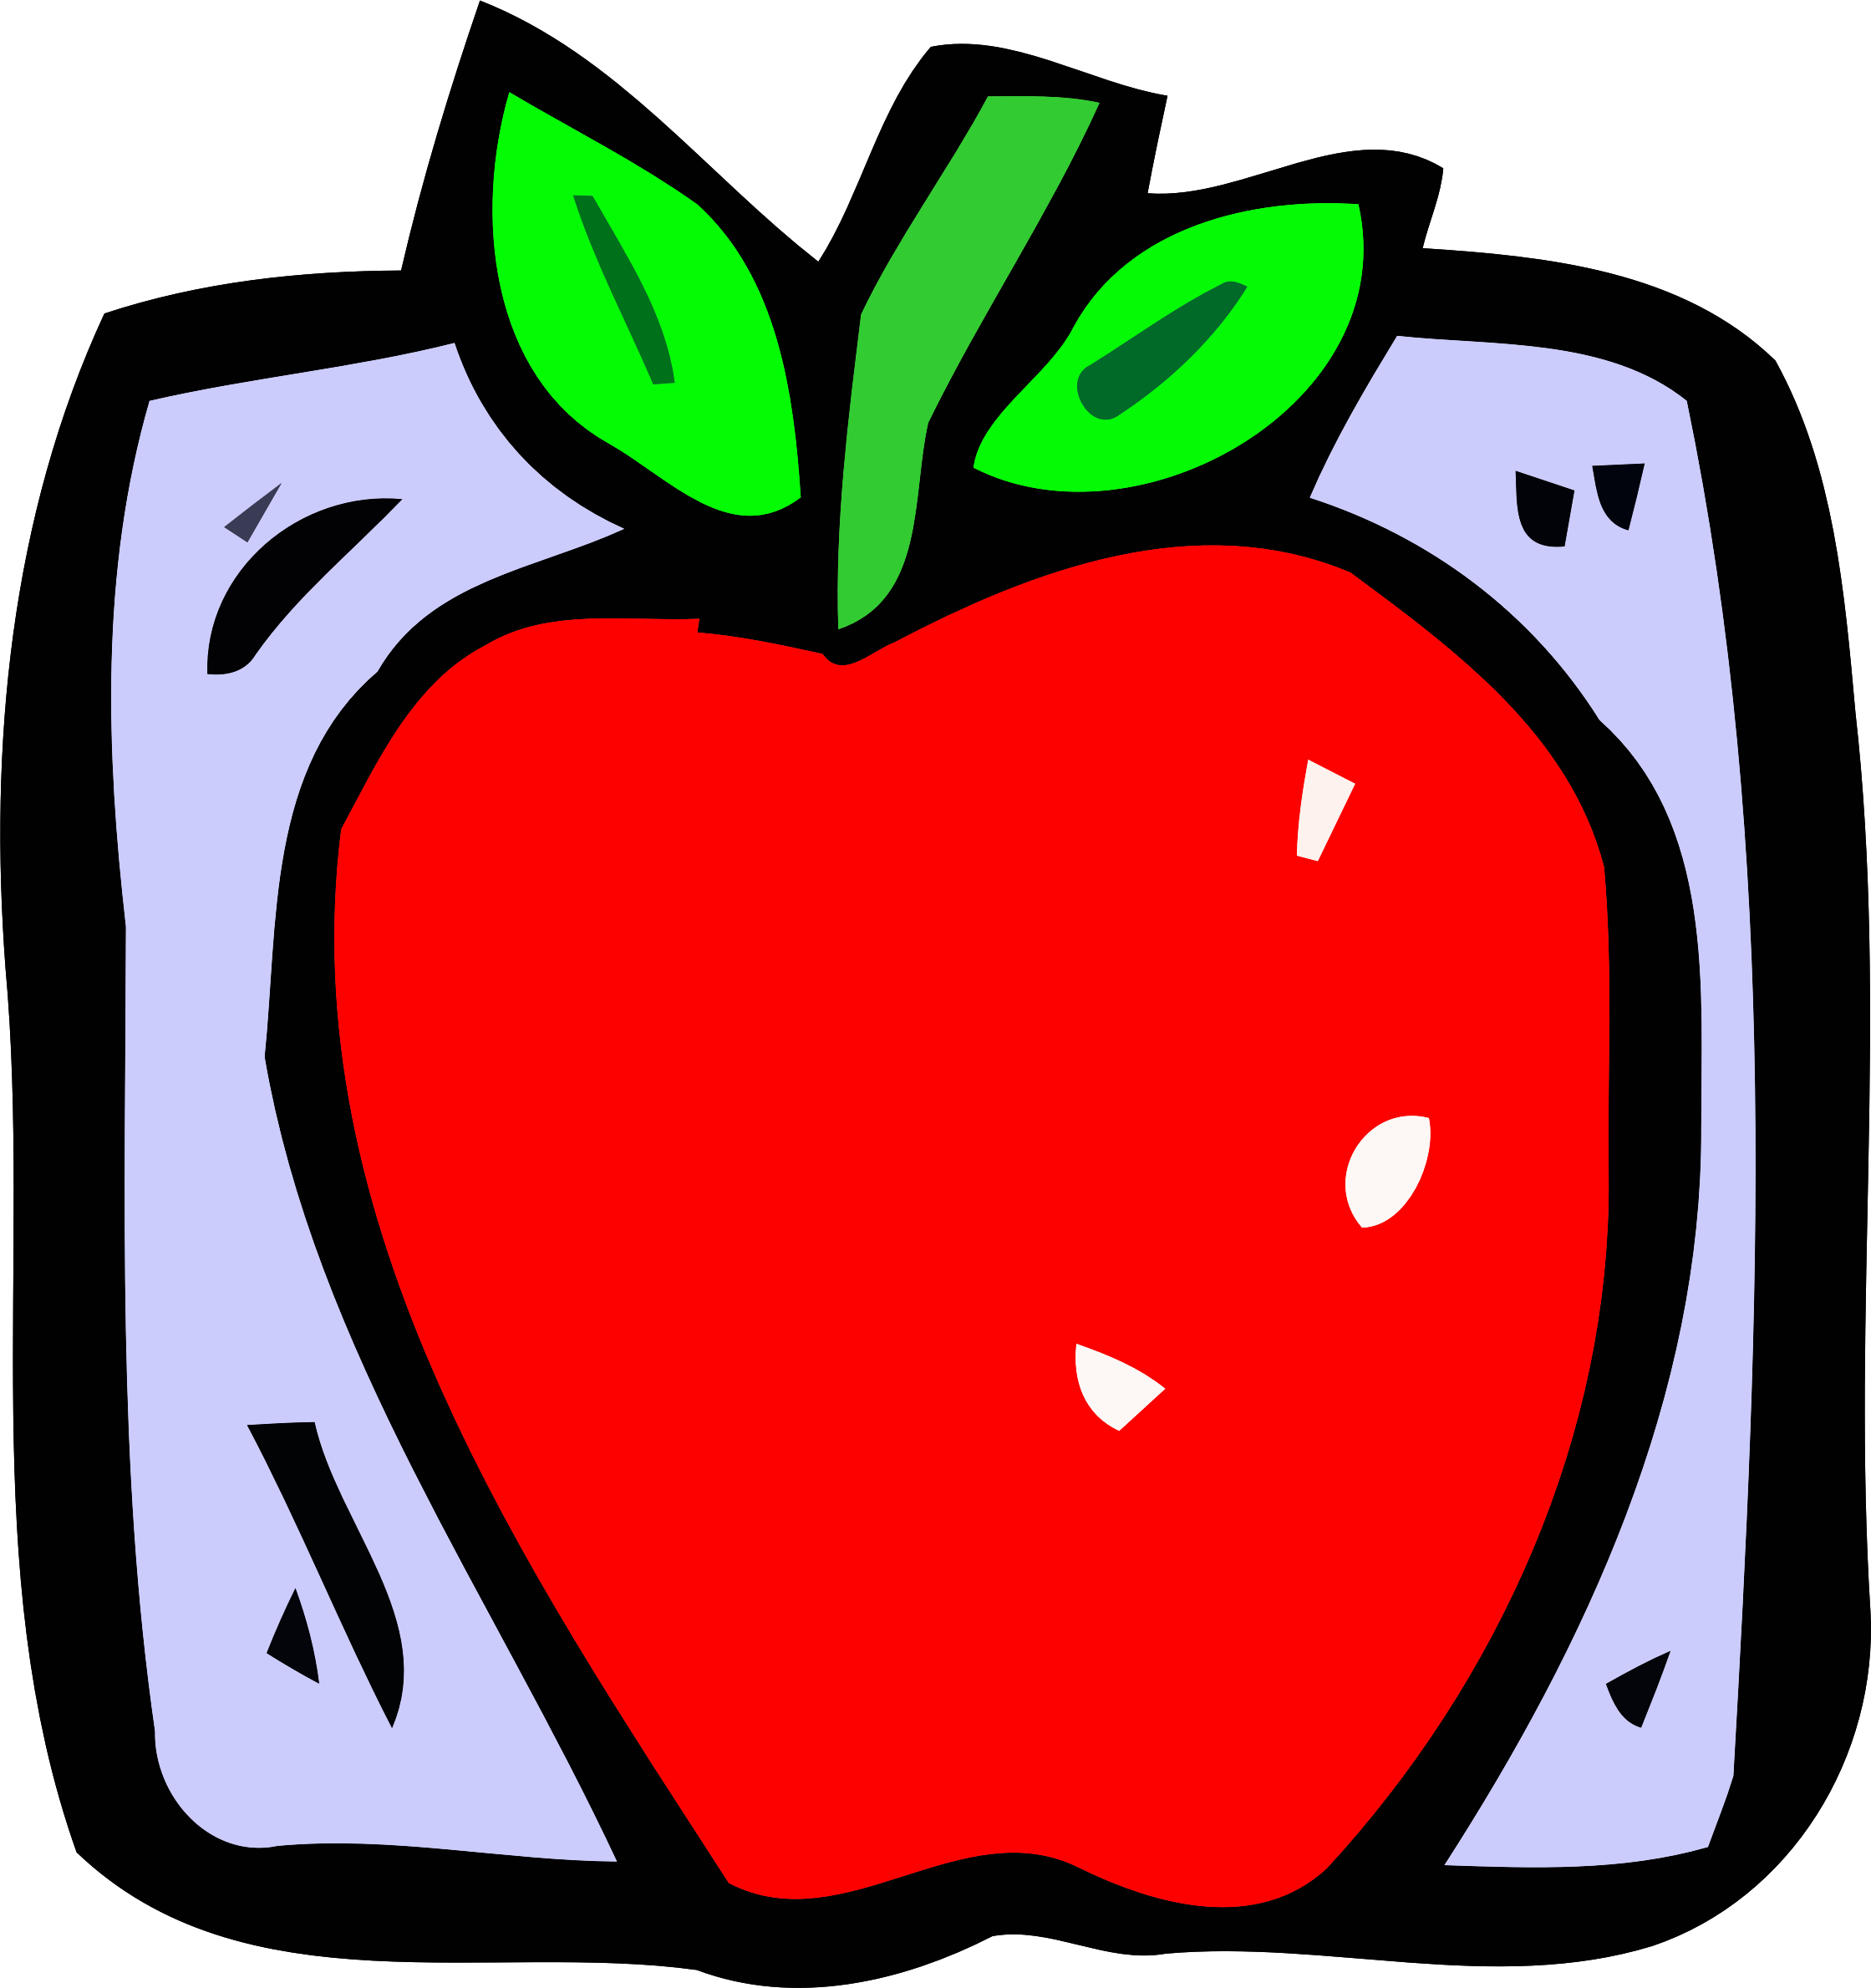 Apple food clipart clip art royalty free Clipart - Food and drink icon - apple clip art royalty free